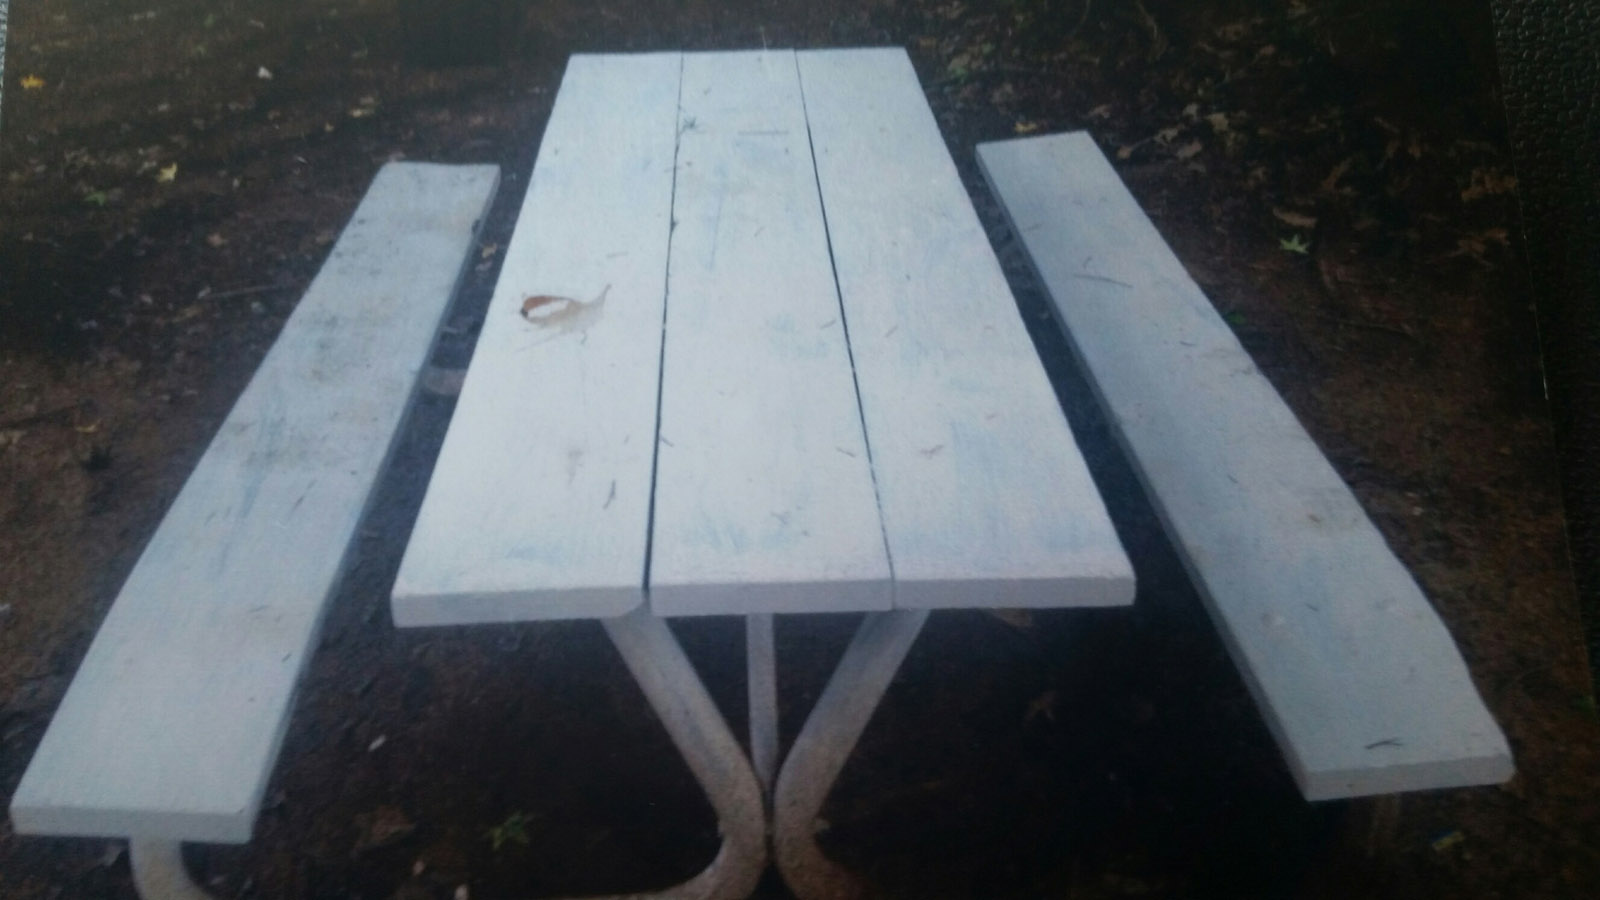 Charge dropped against veteran facing jail time for painting picnic table